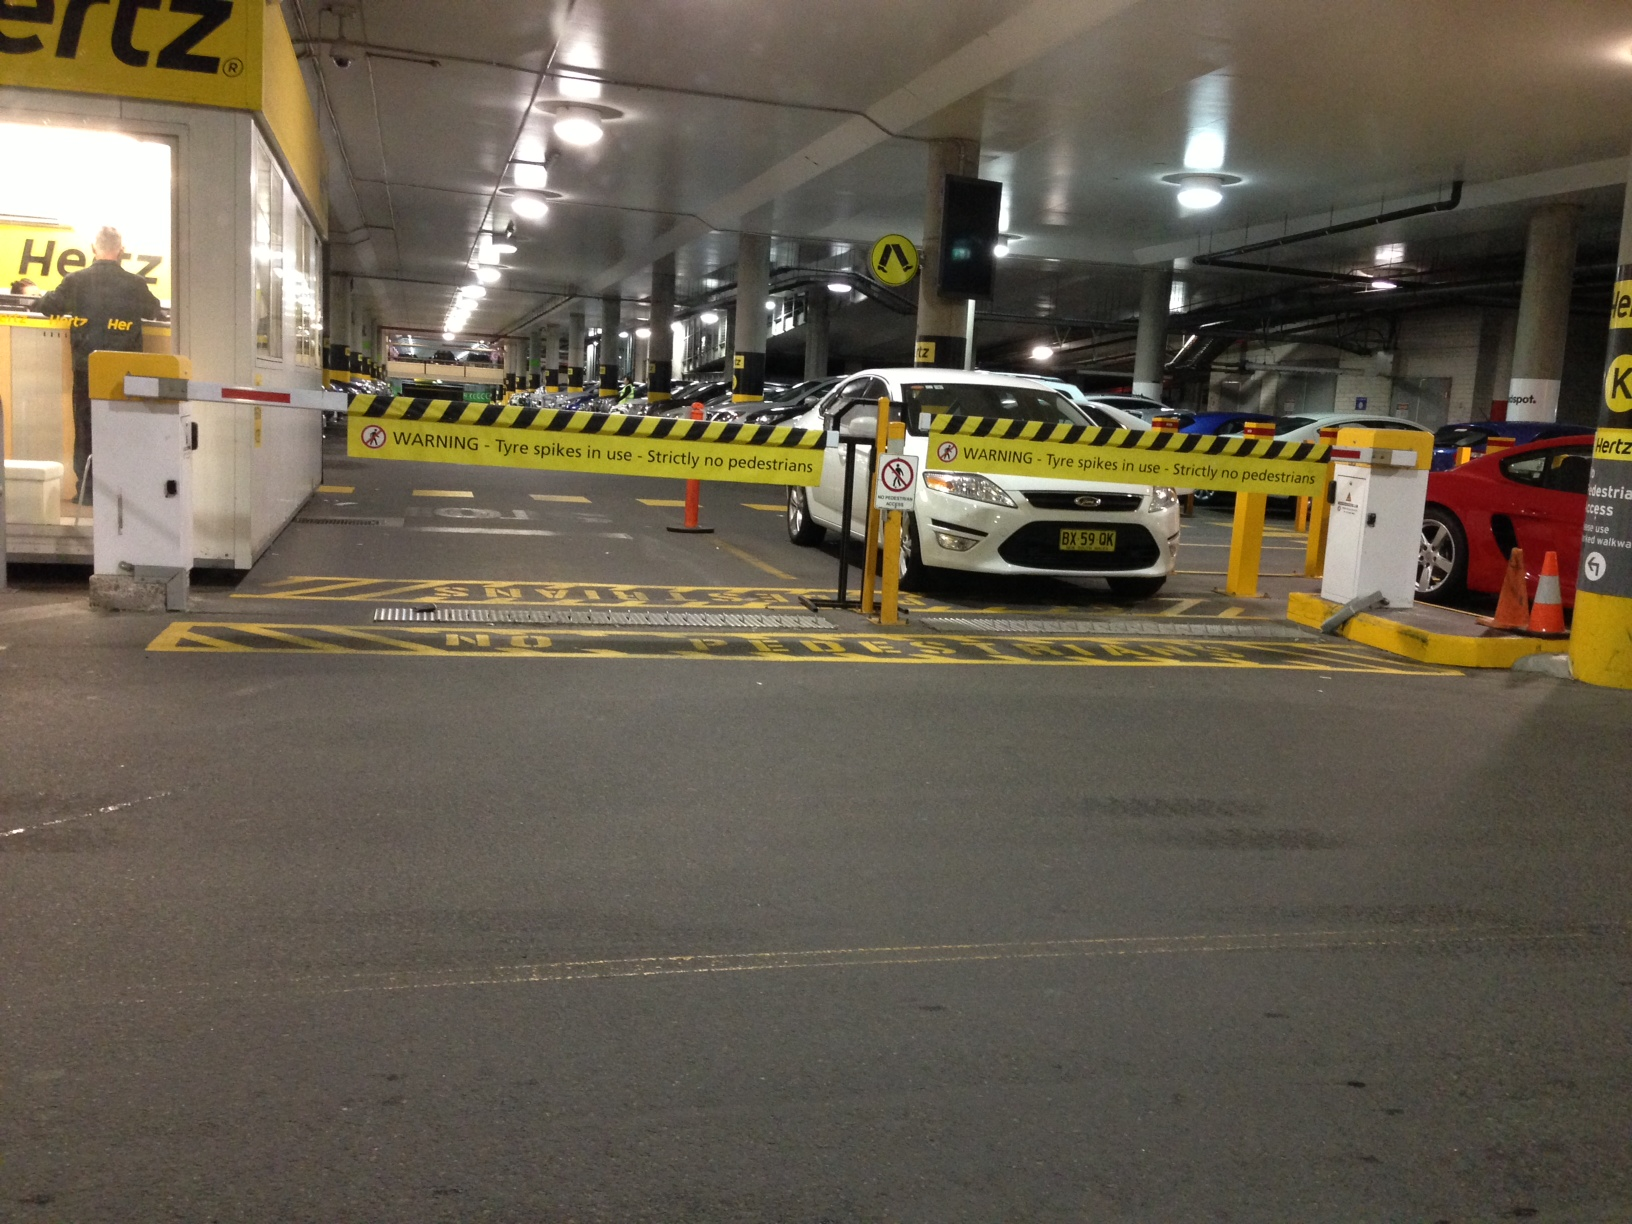 melbourne airport barriers